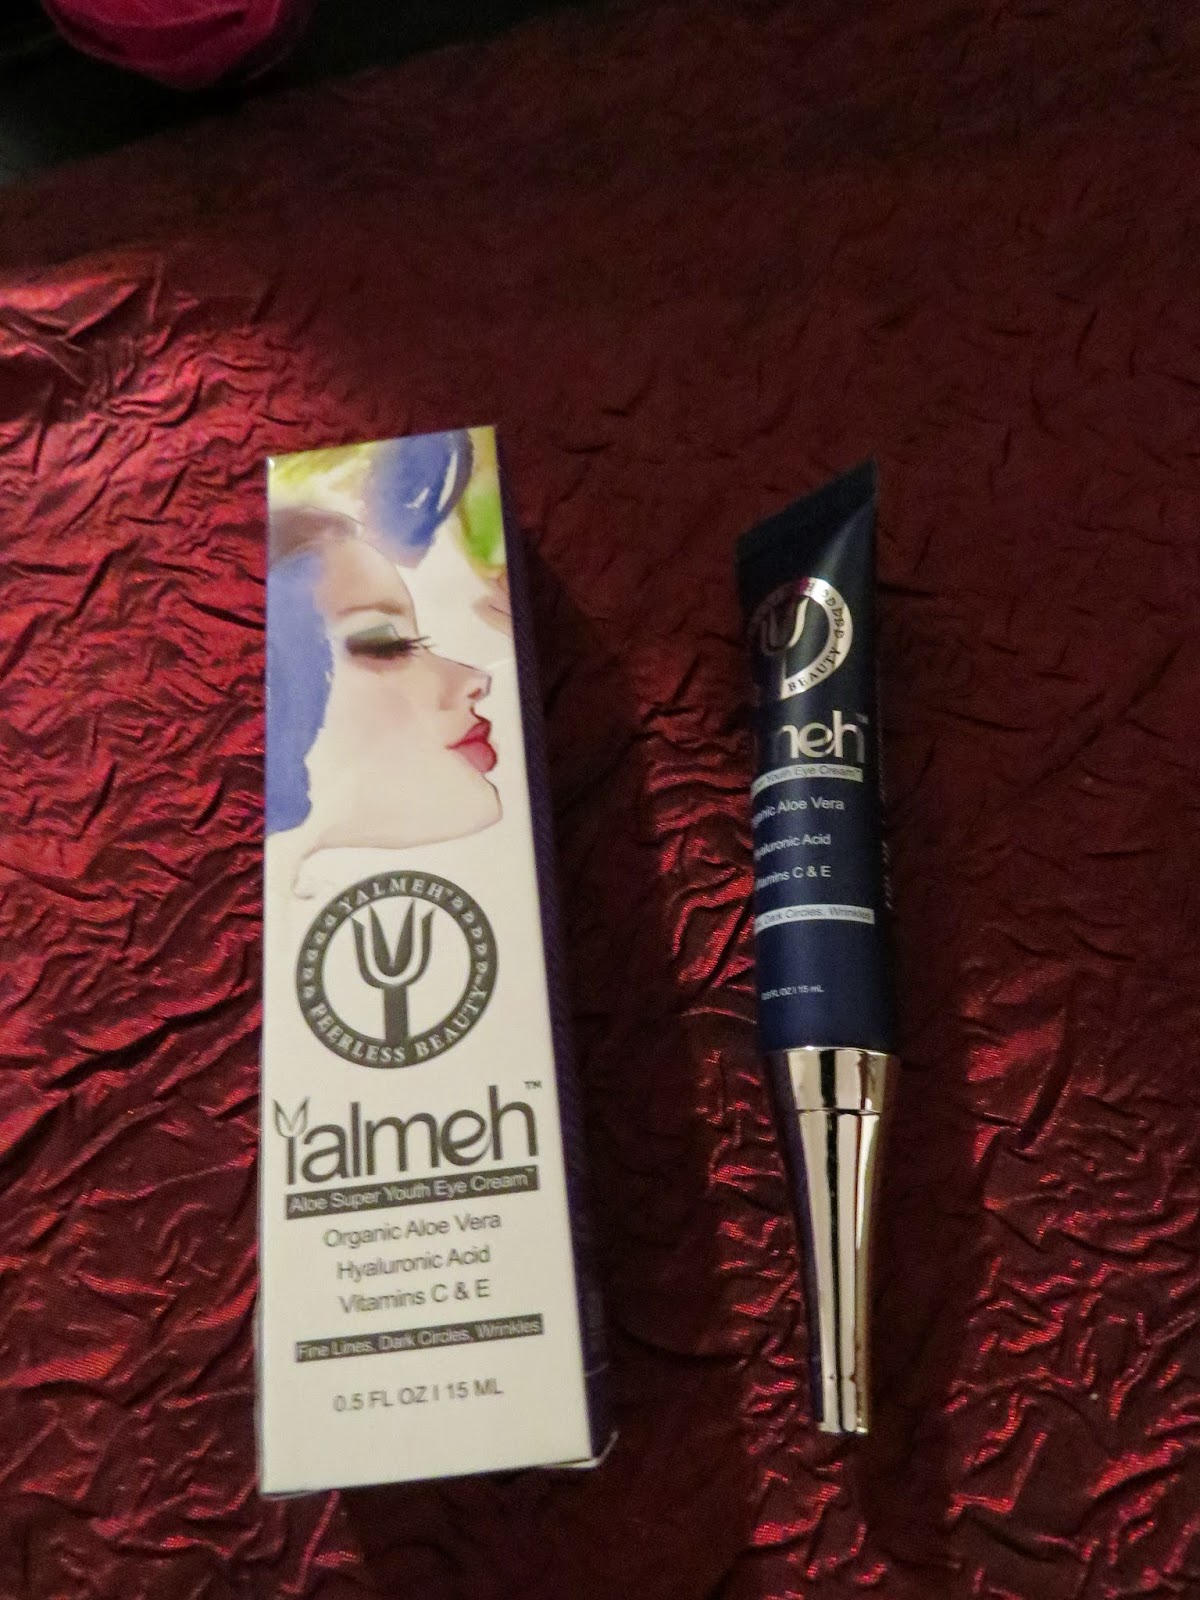 http://dealsandfree.blogspot.ca/2014/11/yalmeh-super-youth-eye-cream-review.html